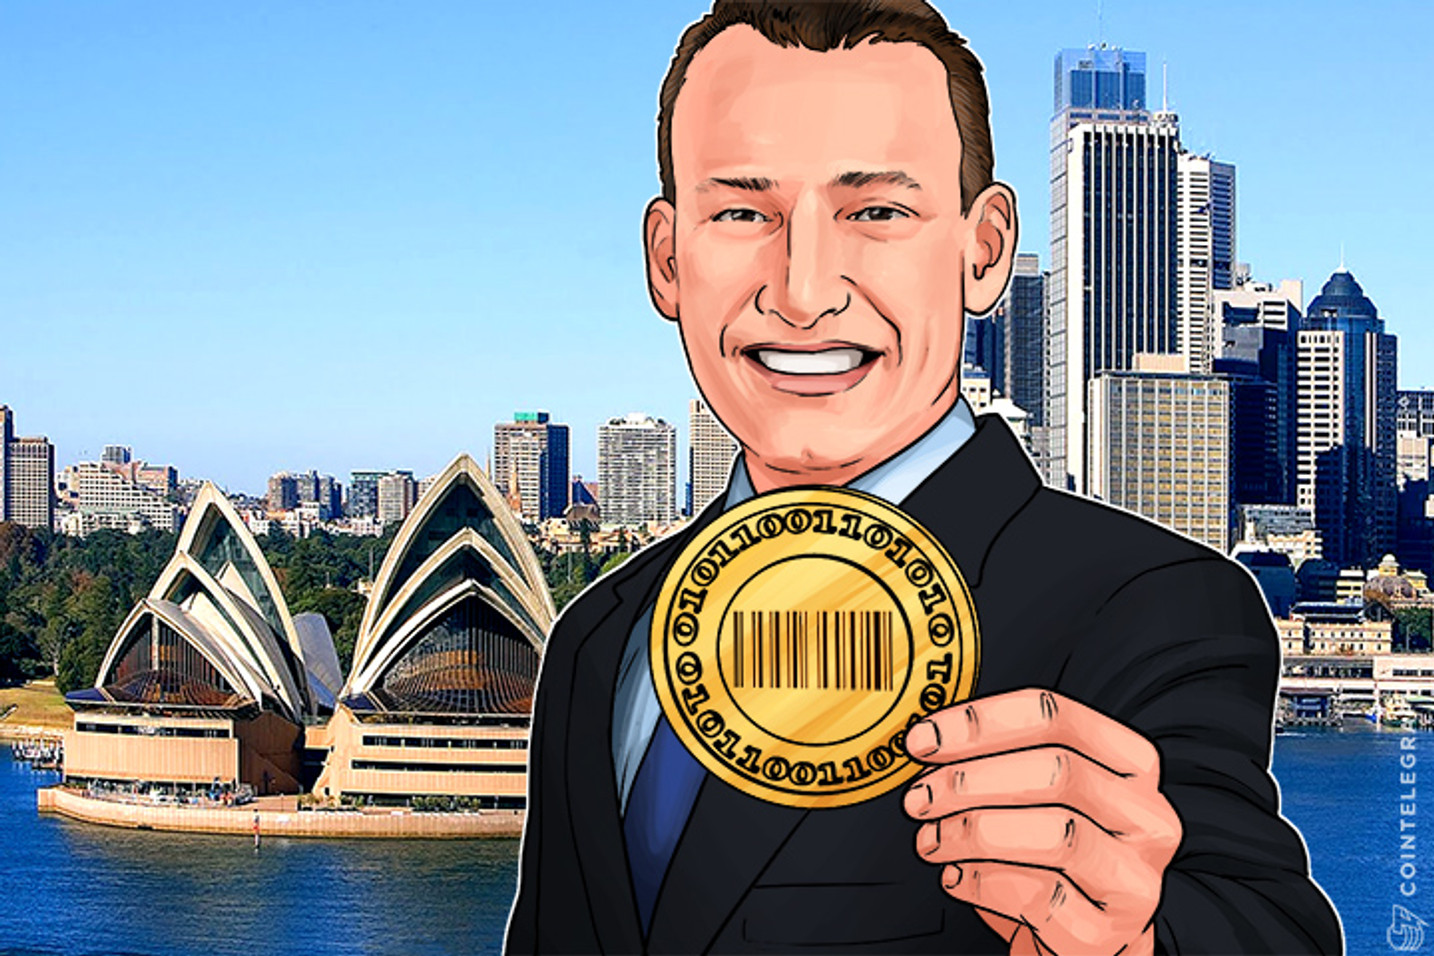 Pirates Had it Too: Australia to Create Crypto's Code of Conduct